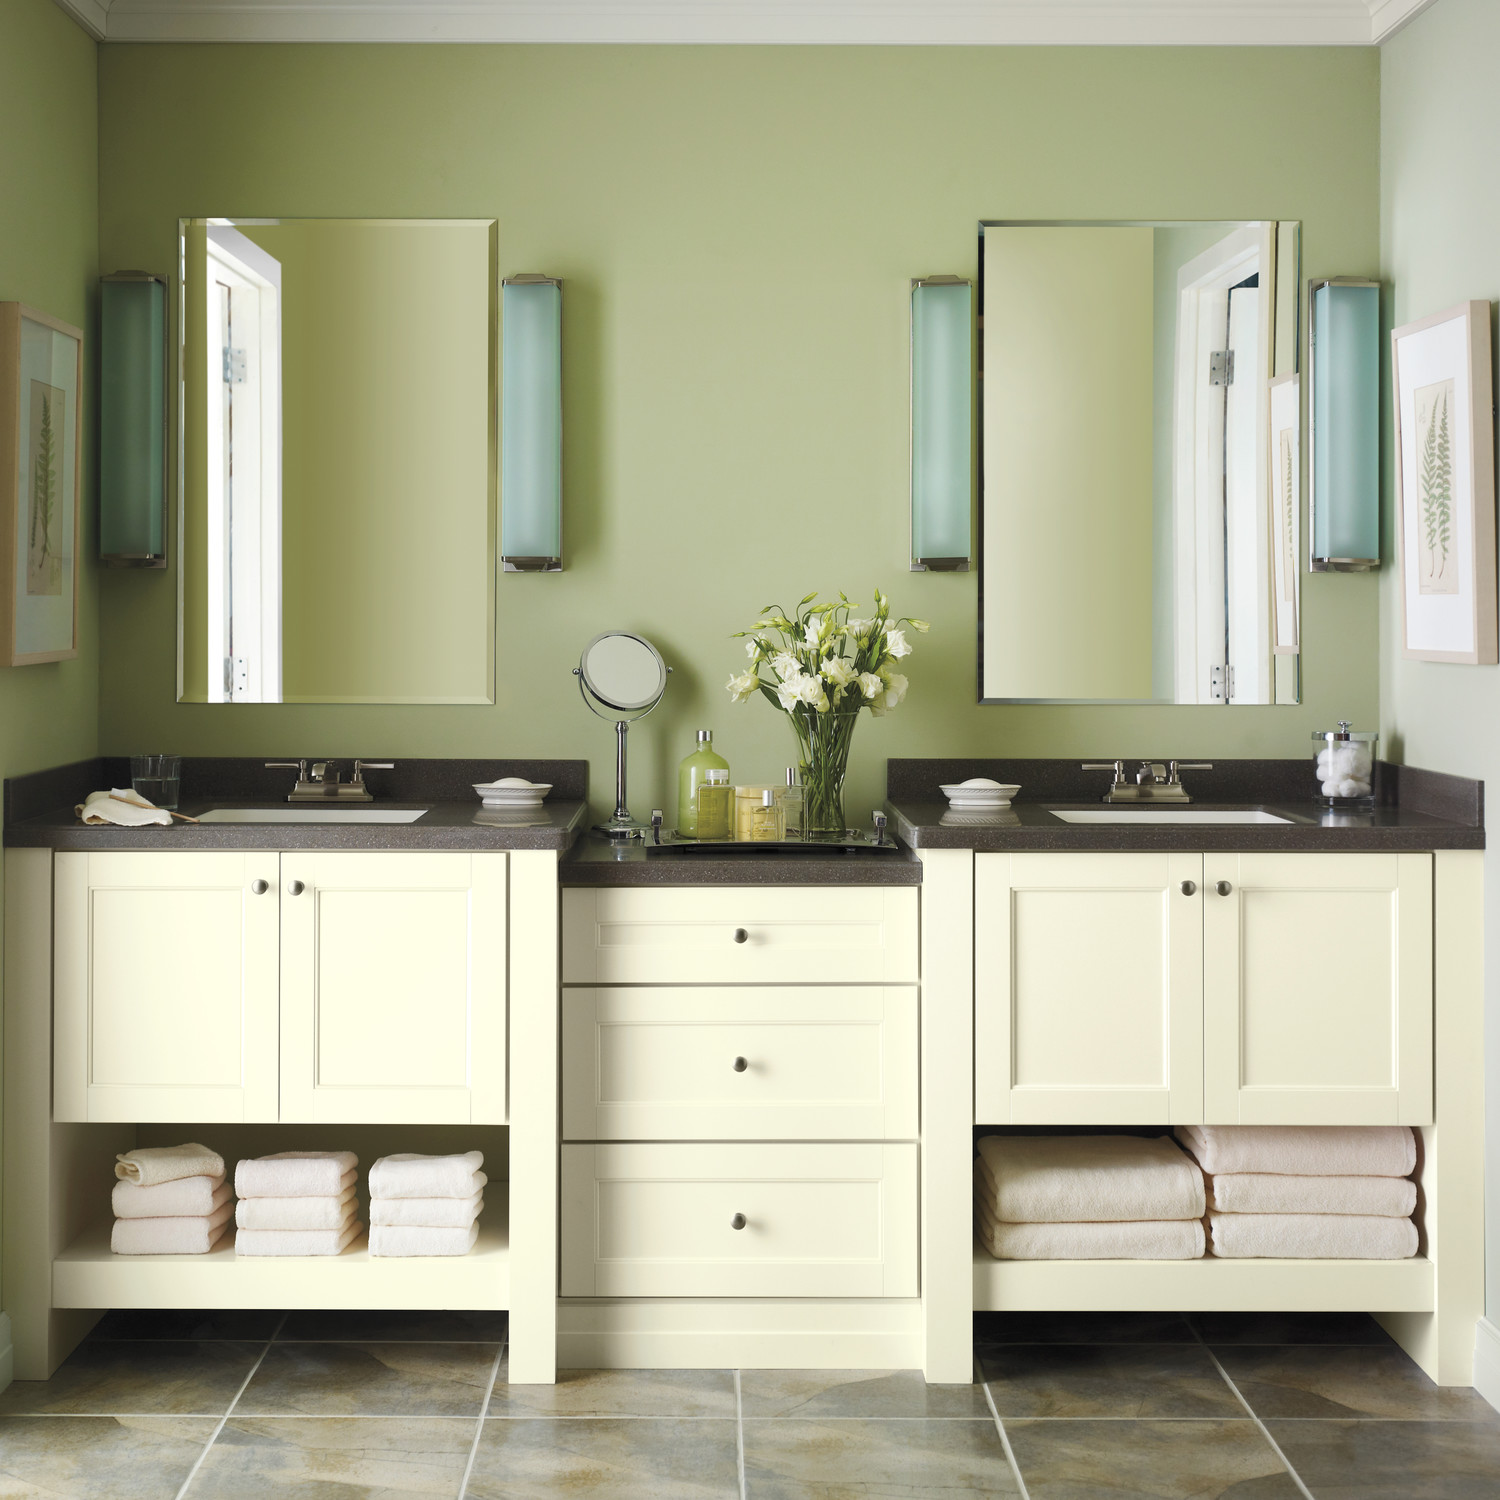 Martha stewart living cabinet solutions from the home depot martha stewart Home depot bathroom design center